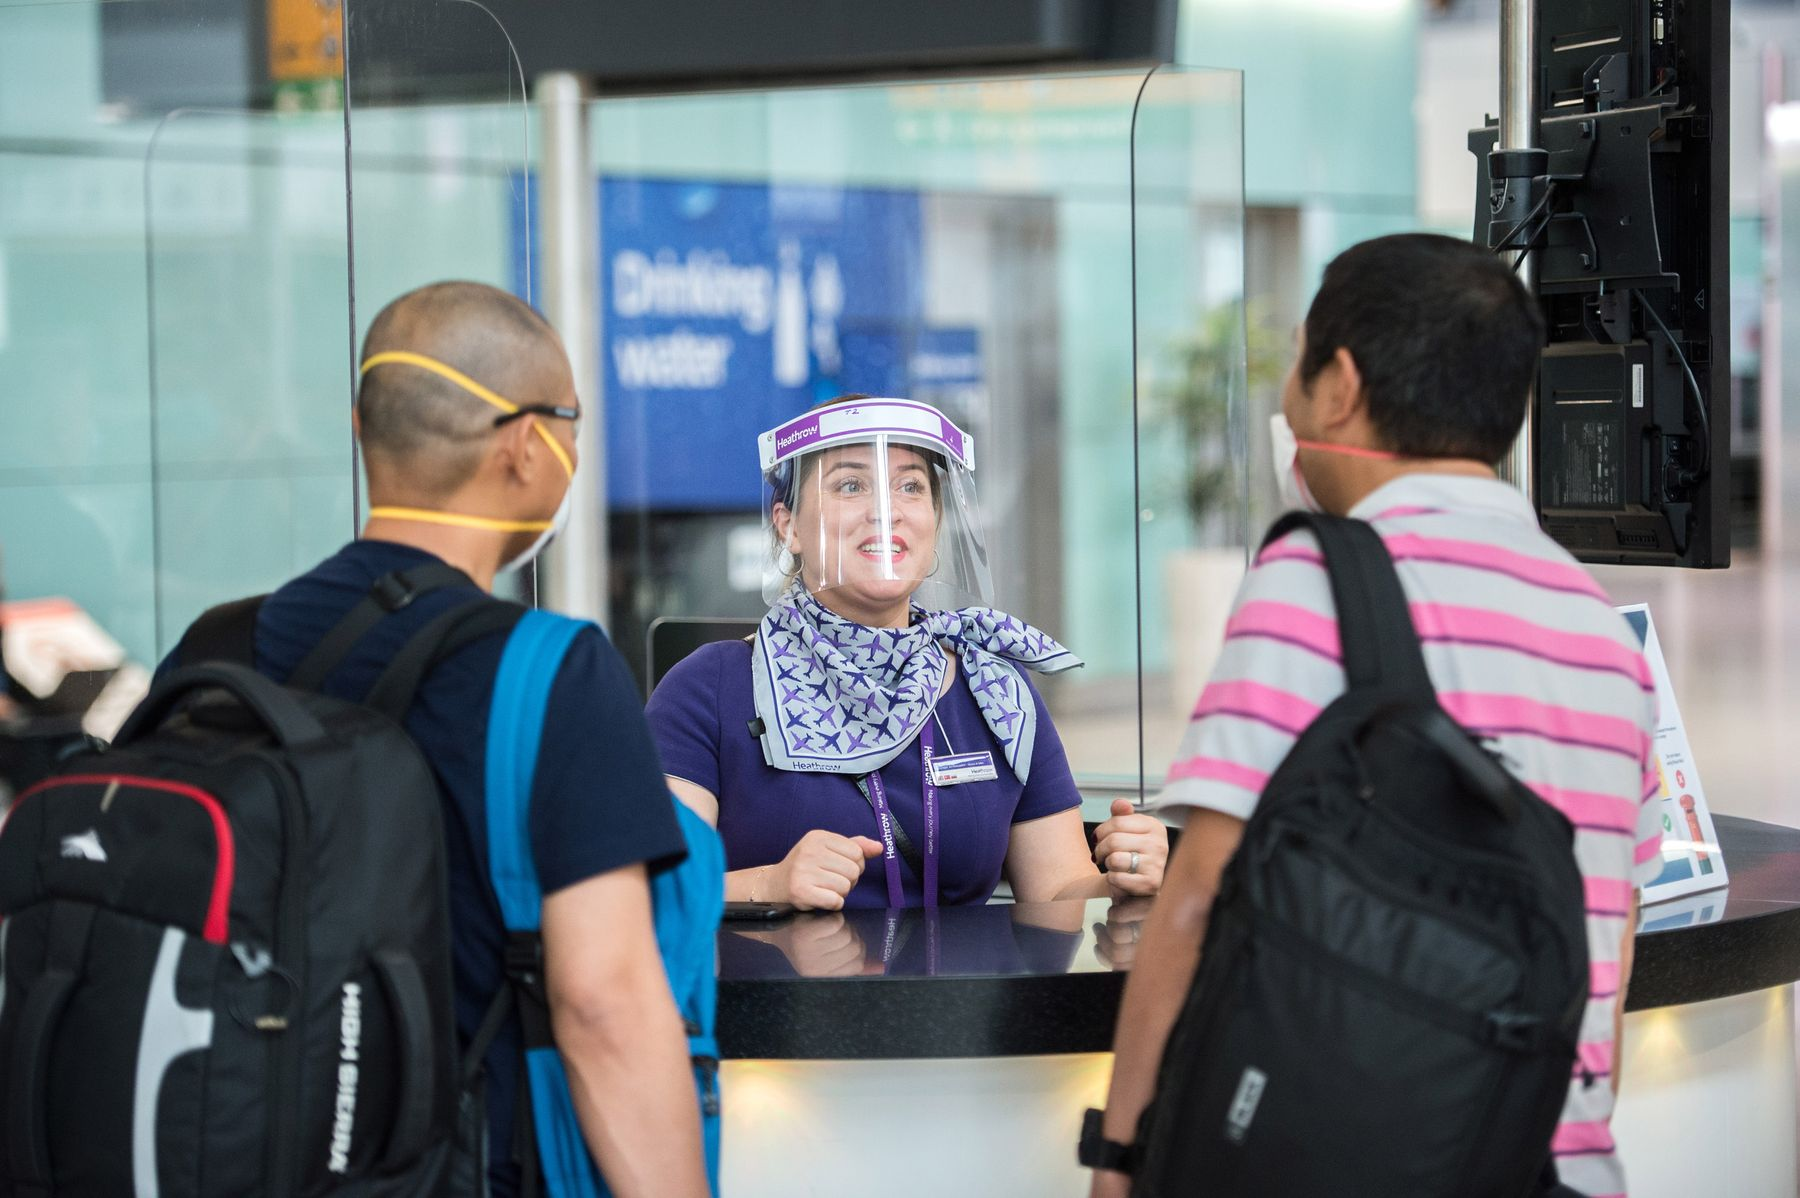 Cover your face at airports during coronavirus